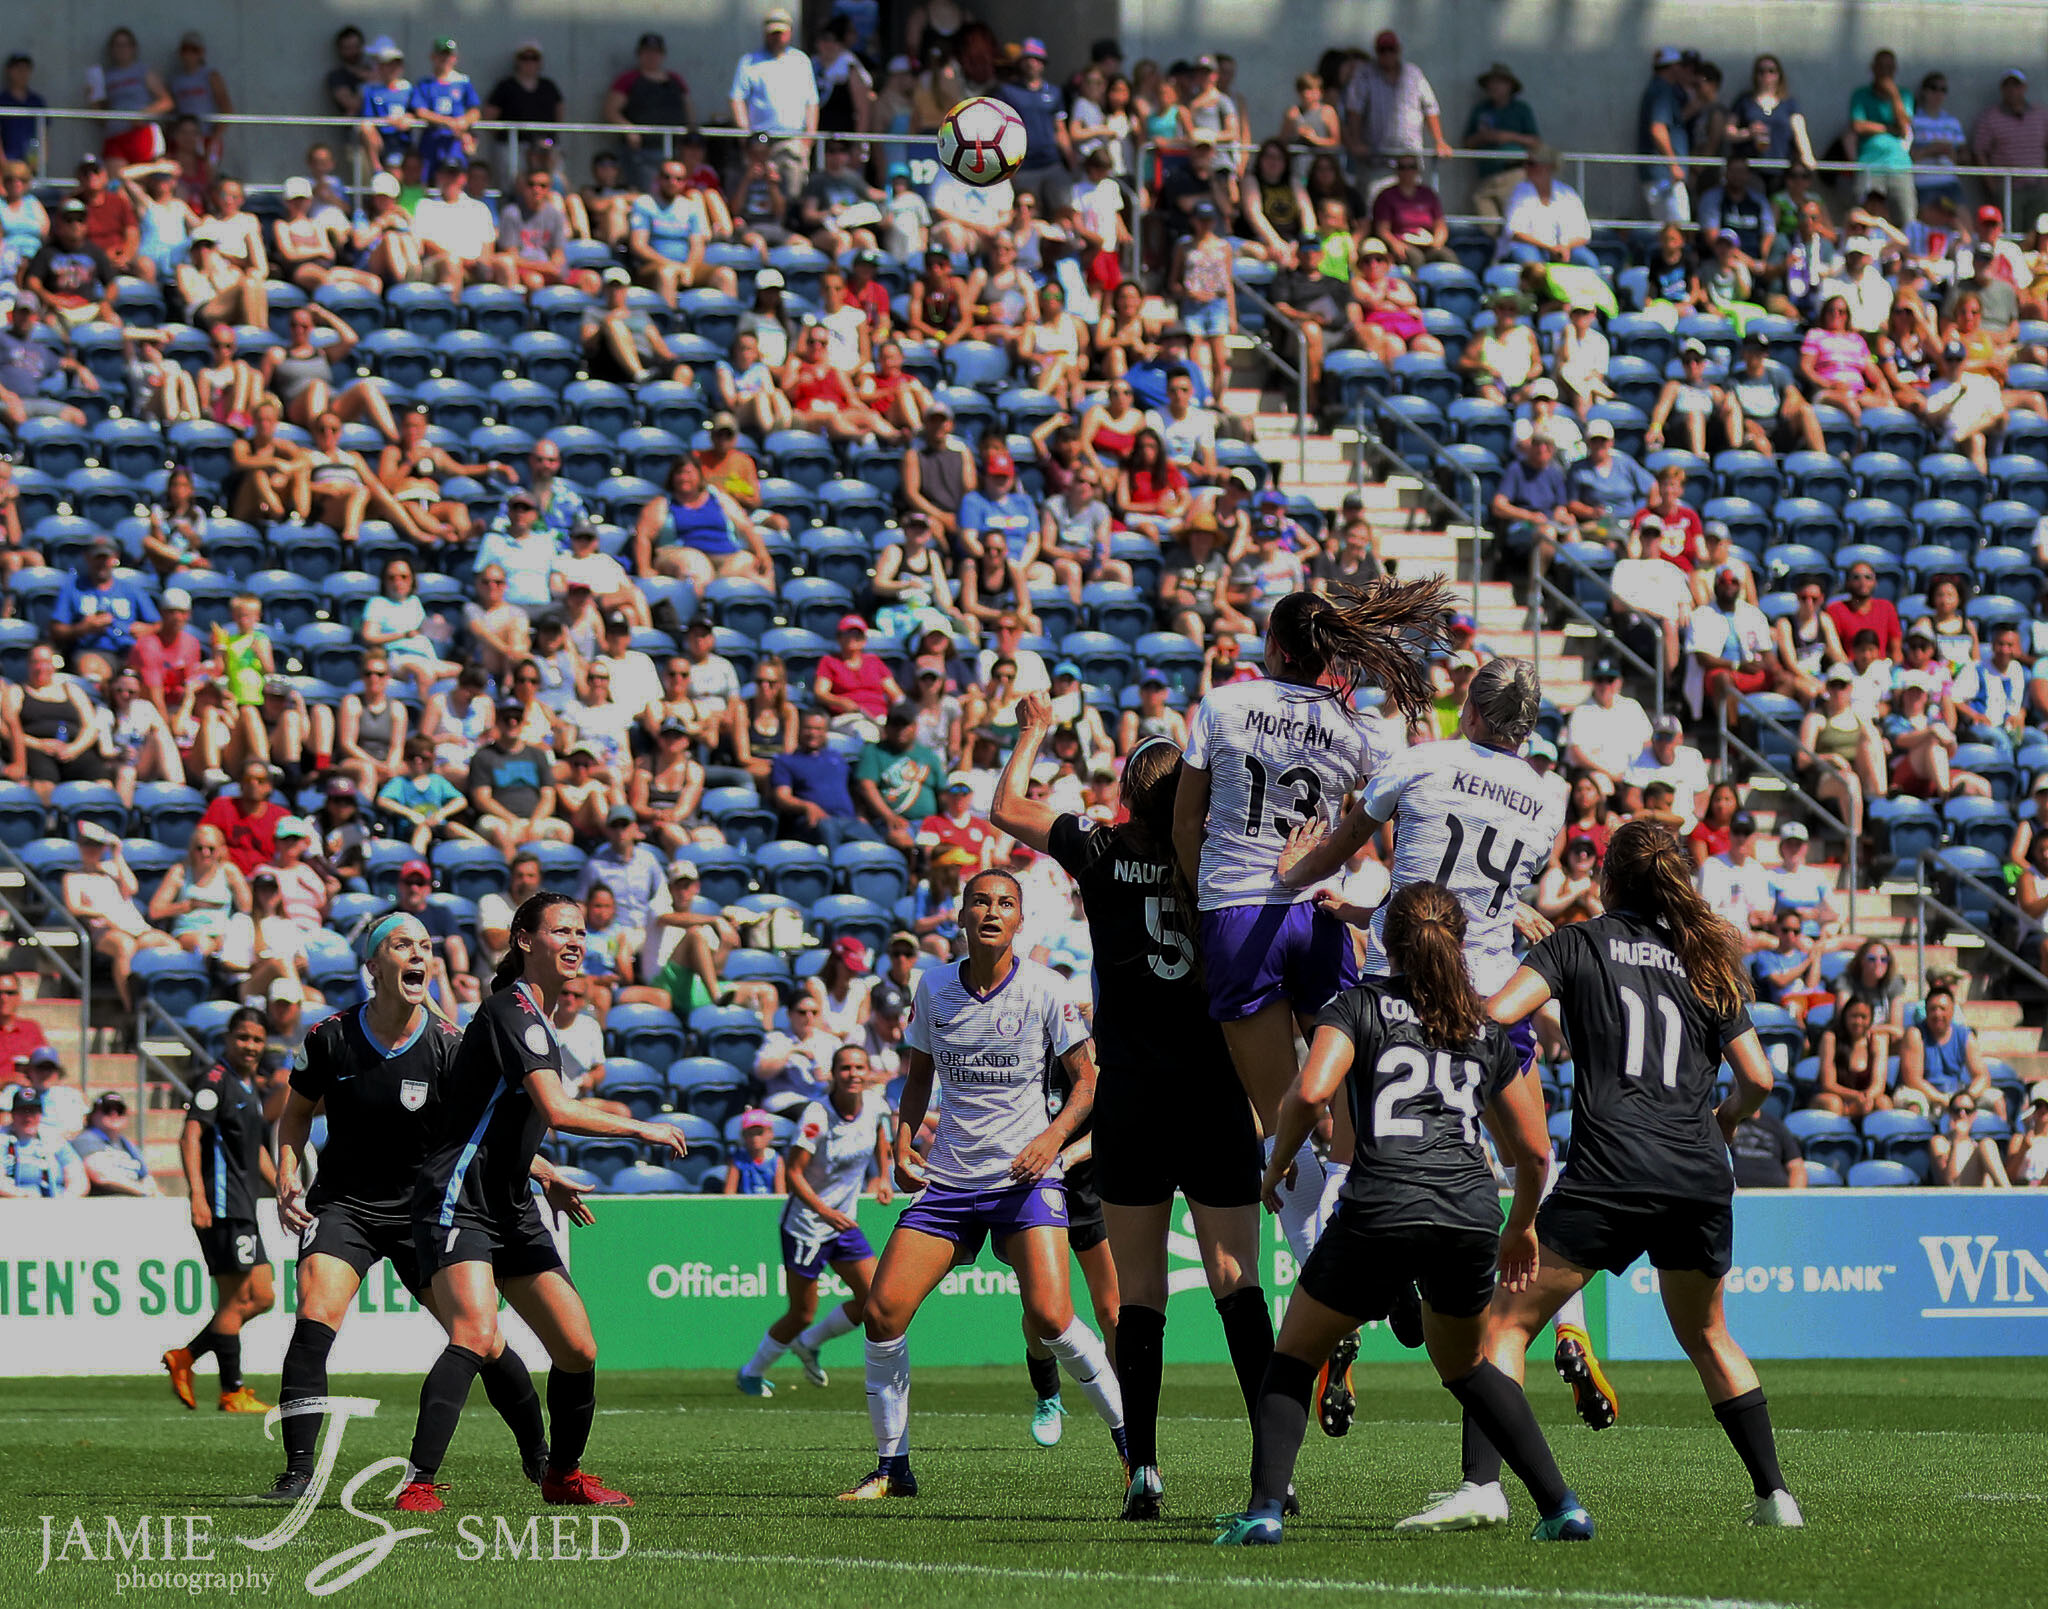 NWSL Orlando vs Chicago - @Jamie Smed